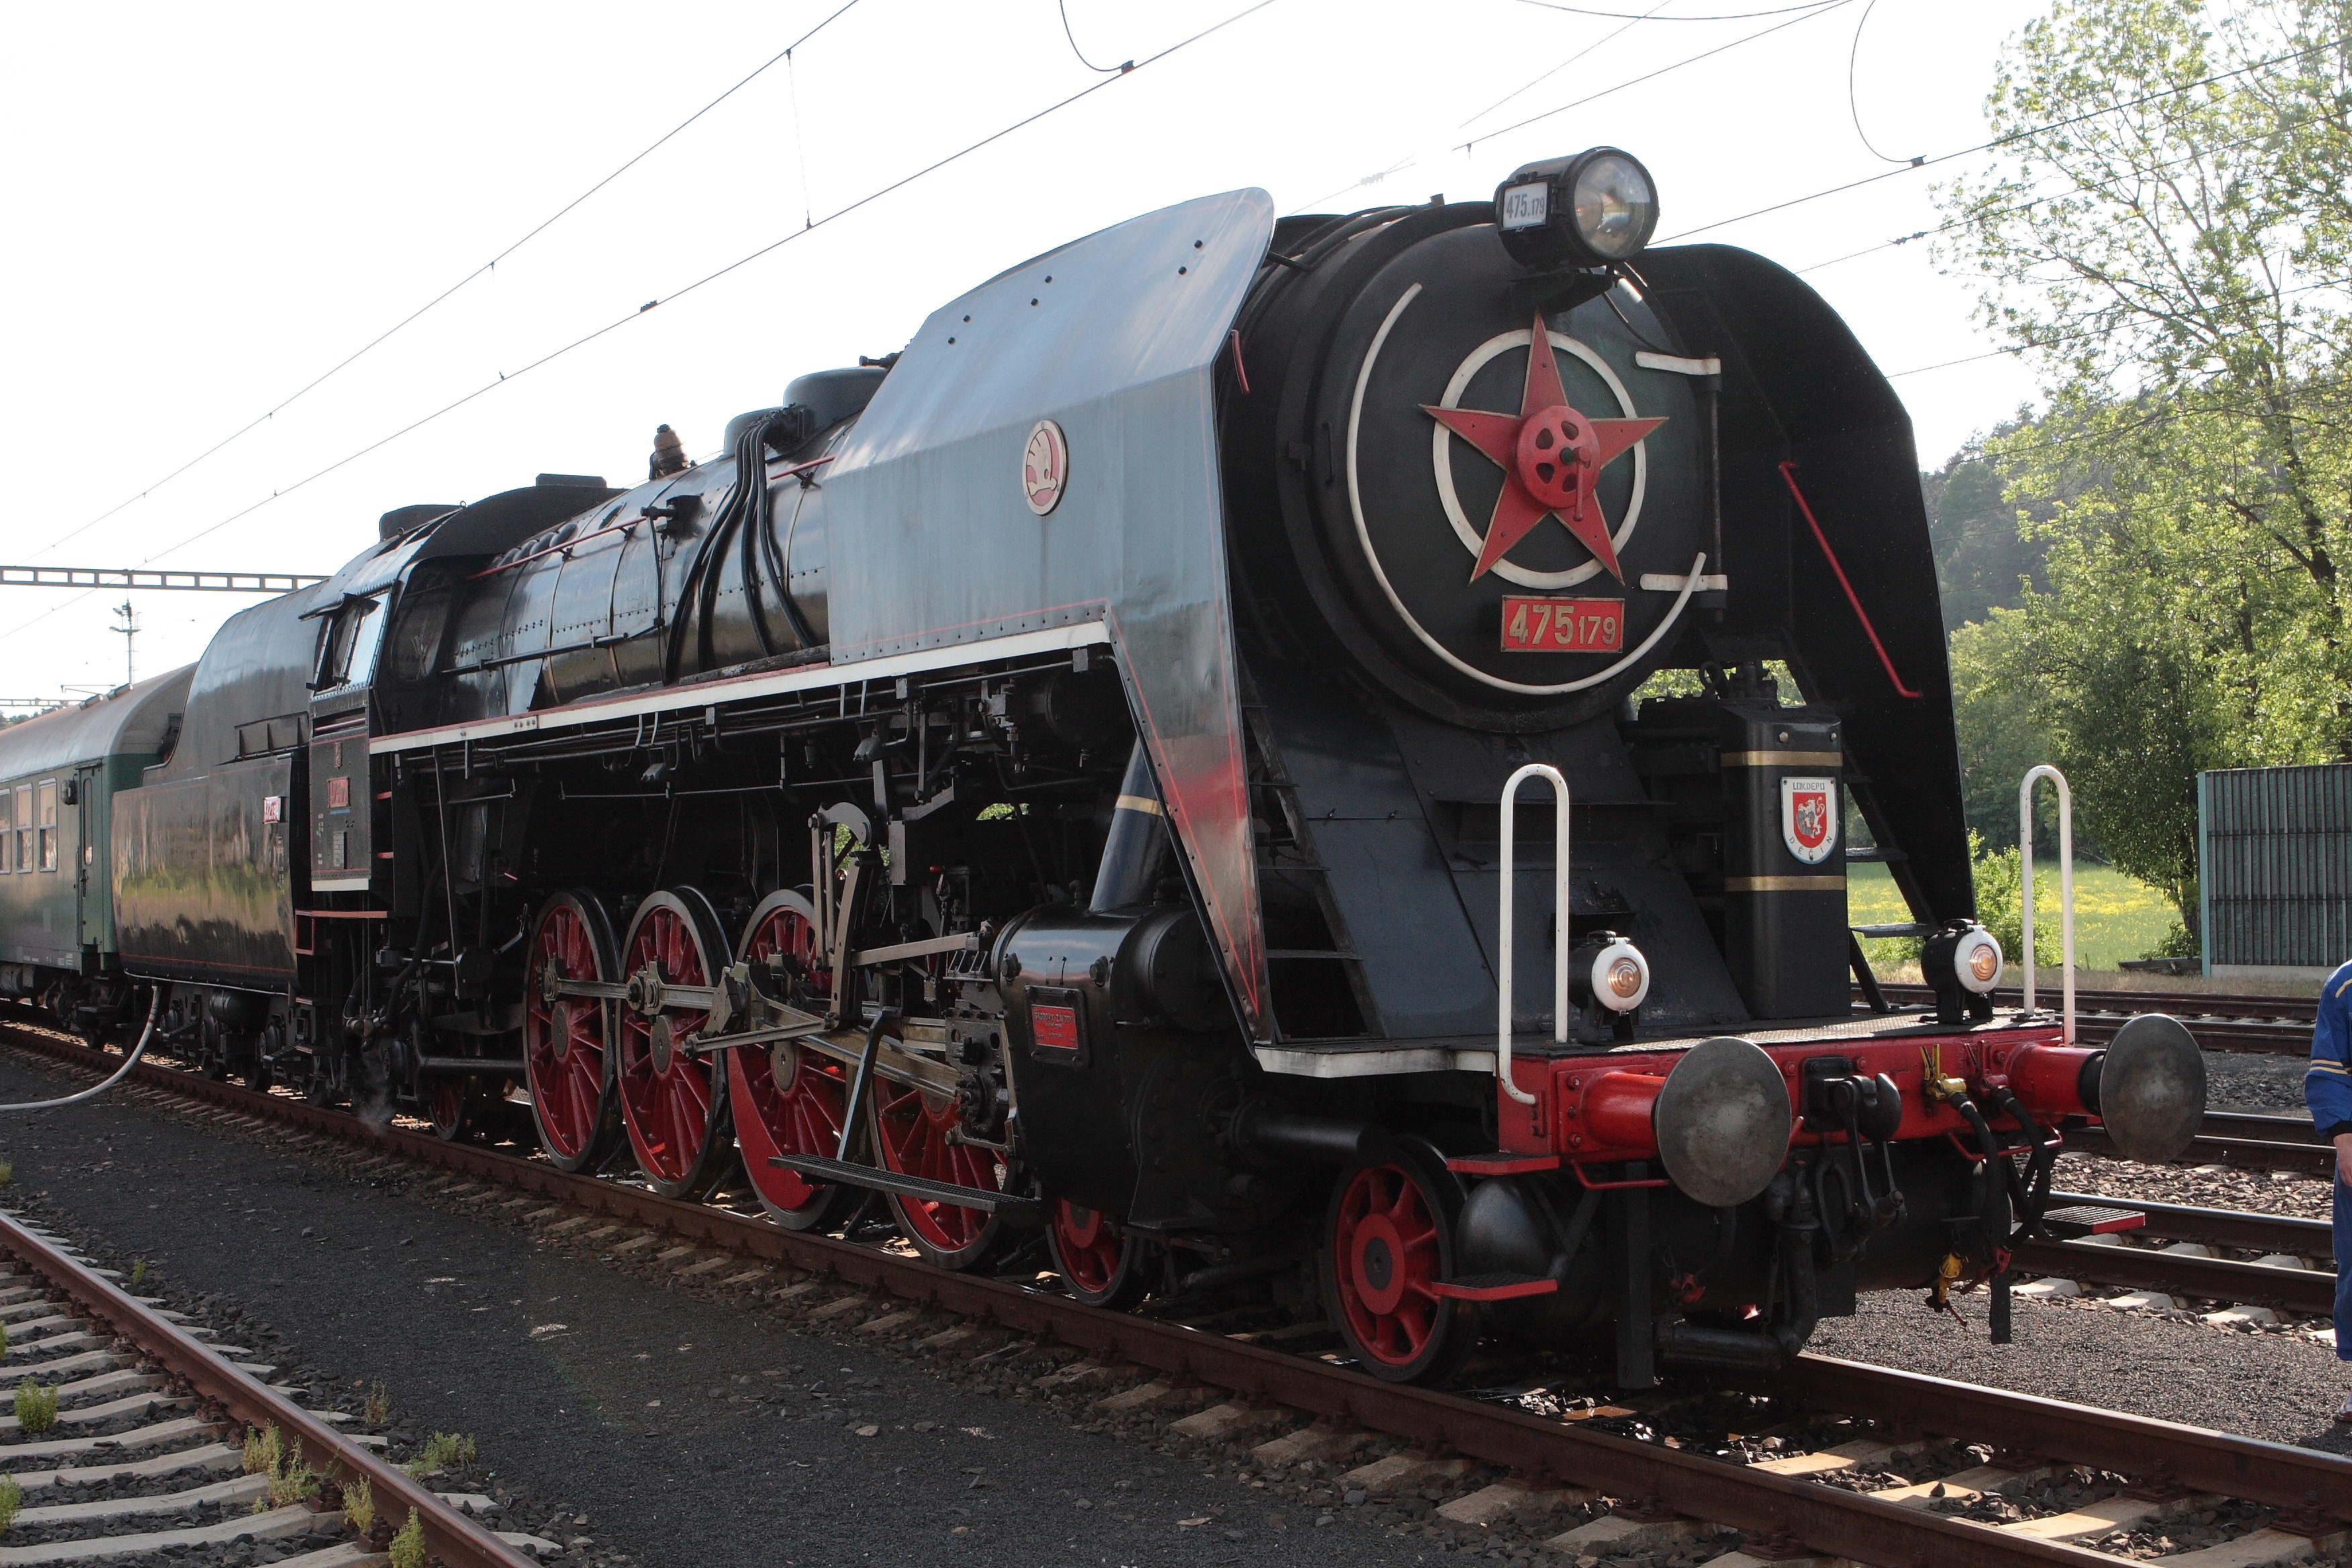 File:475-179 czech steam locomotive 2007 05 12.jpg